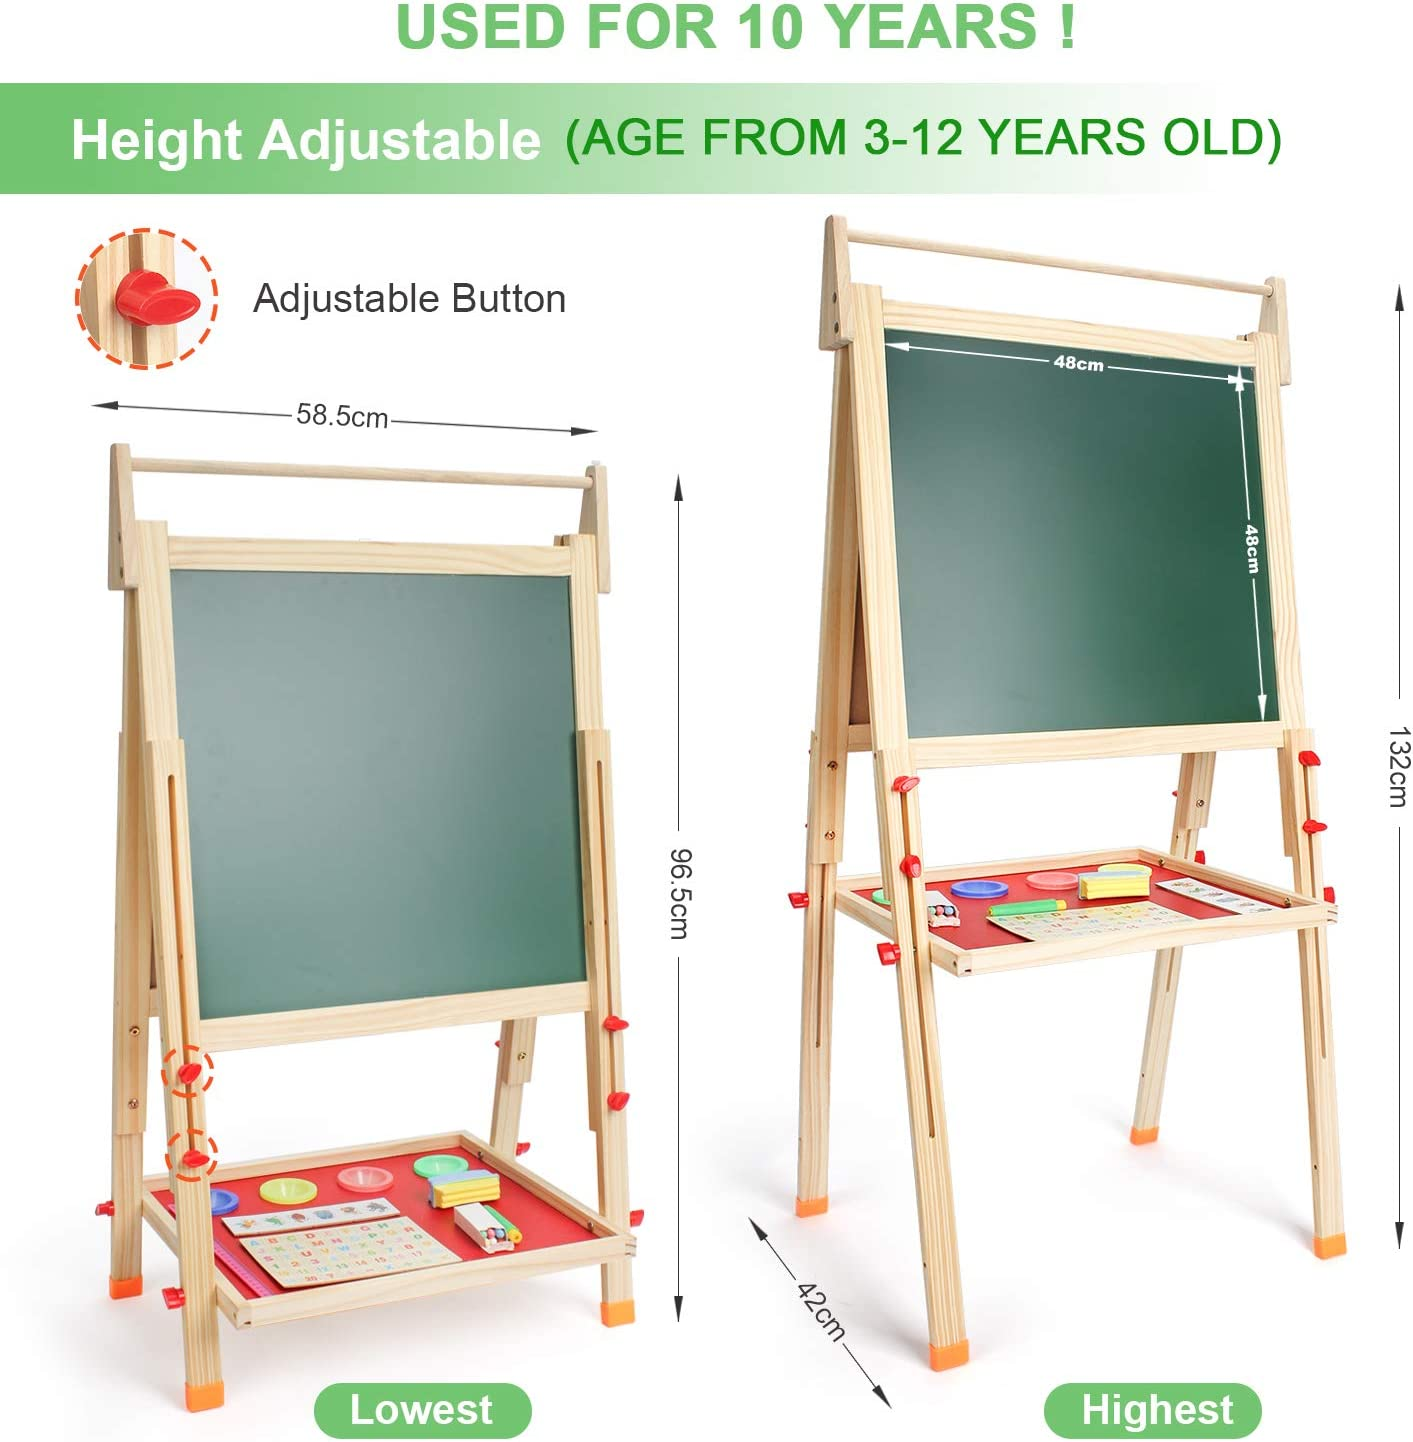 SALEM MASTER Art Easel For Kids Double-Sided Whiteboard & Chalkboard Adjustable Standing Easel, Toddlers Toys With Magnets Letters & Numbers-Beige